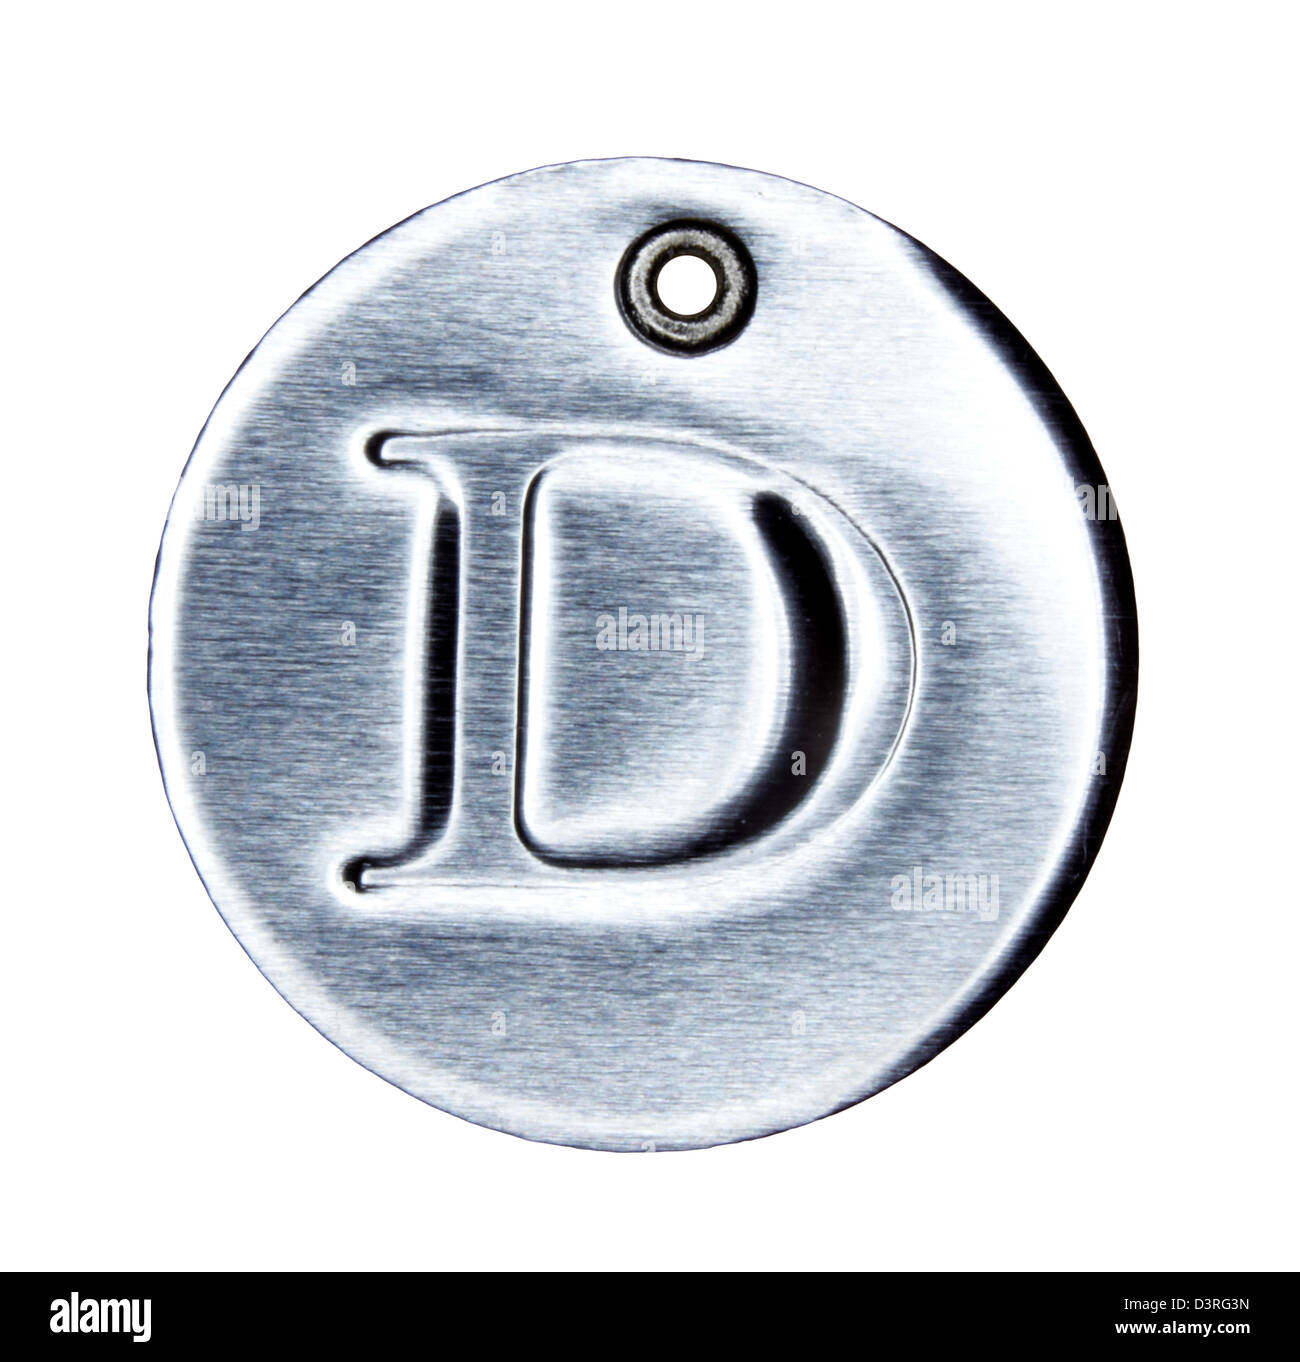 Brushed metal letter of the alphabet D - Stock Image